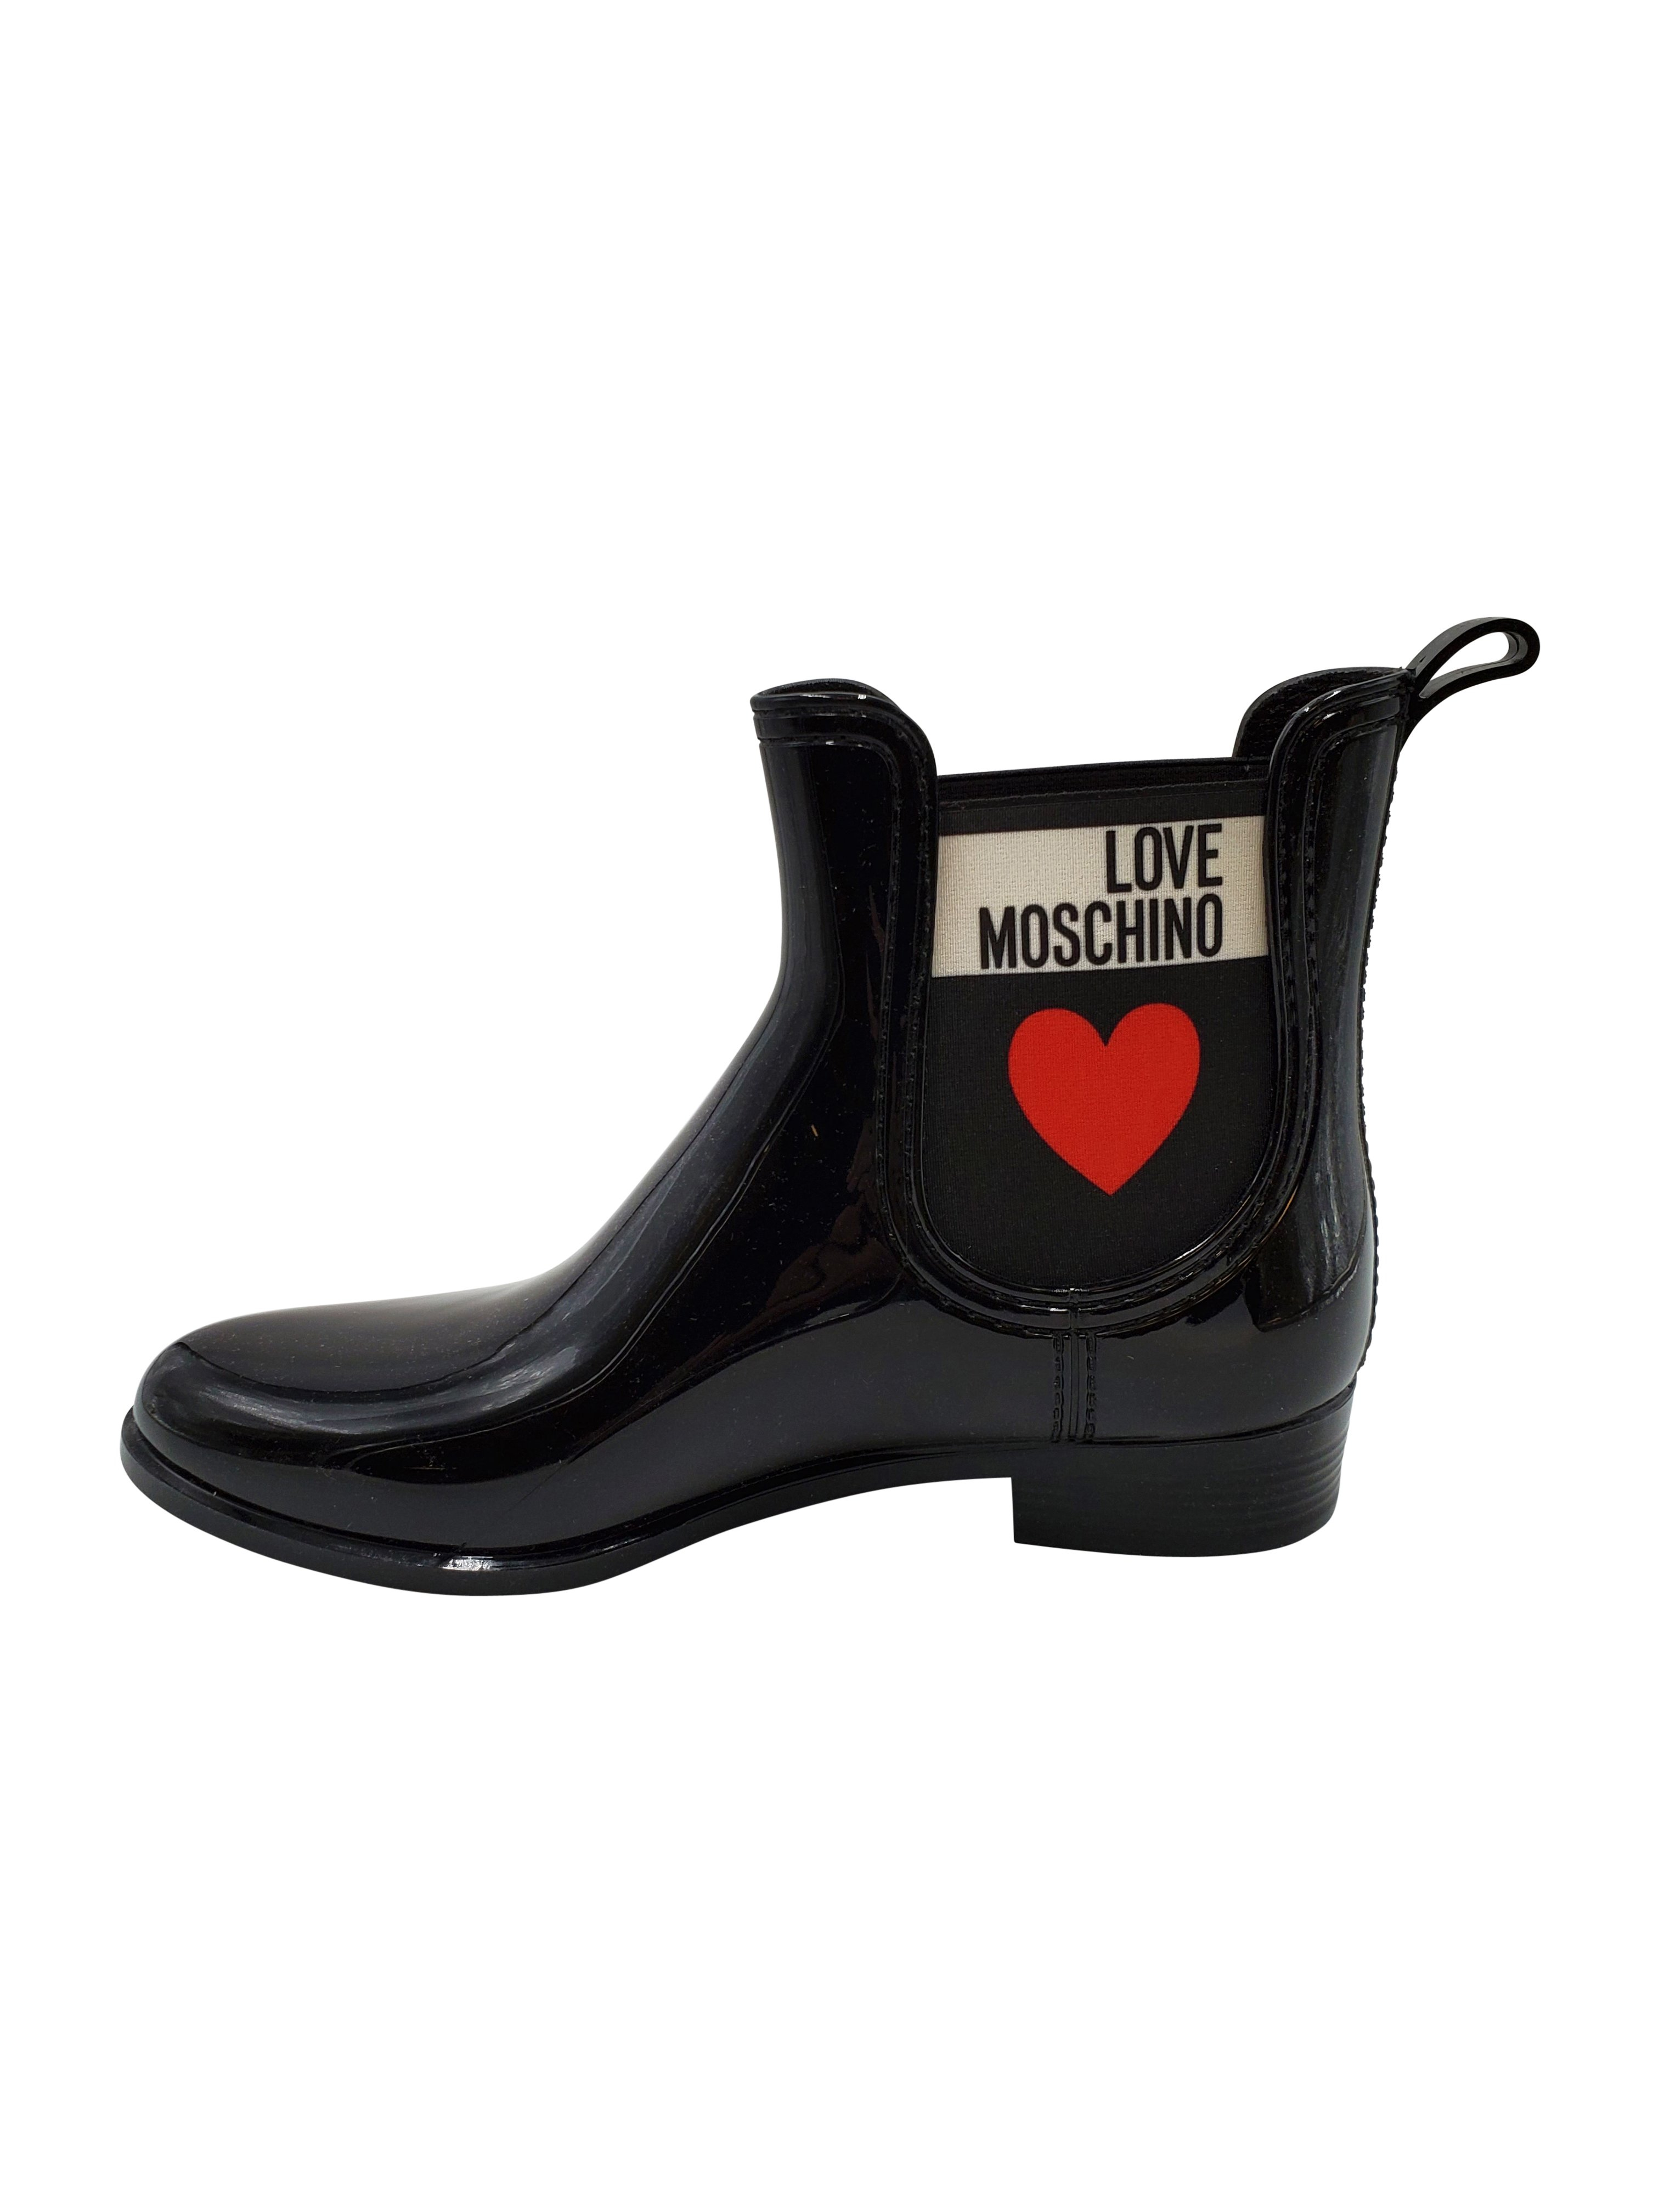 Image of LOVE MOSCHINO Women Angle Boots